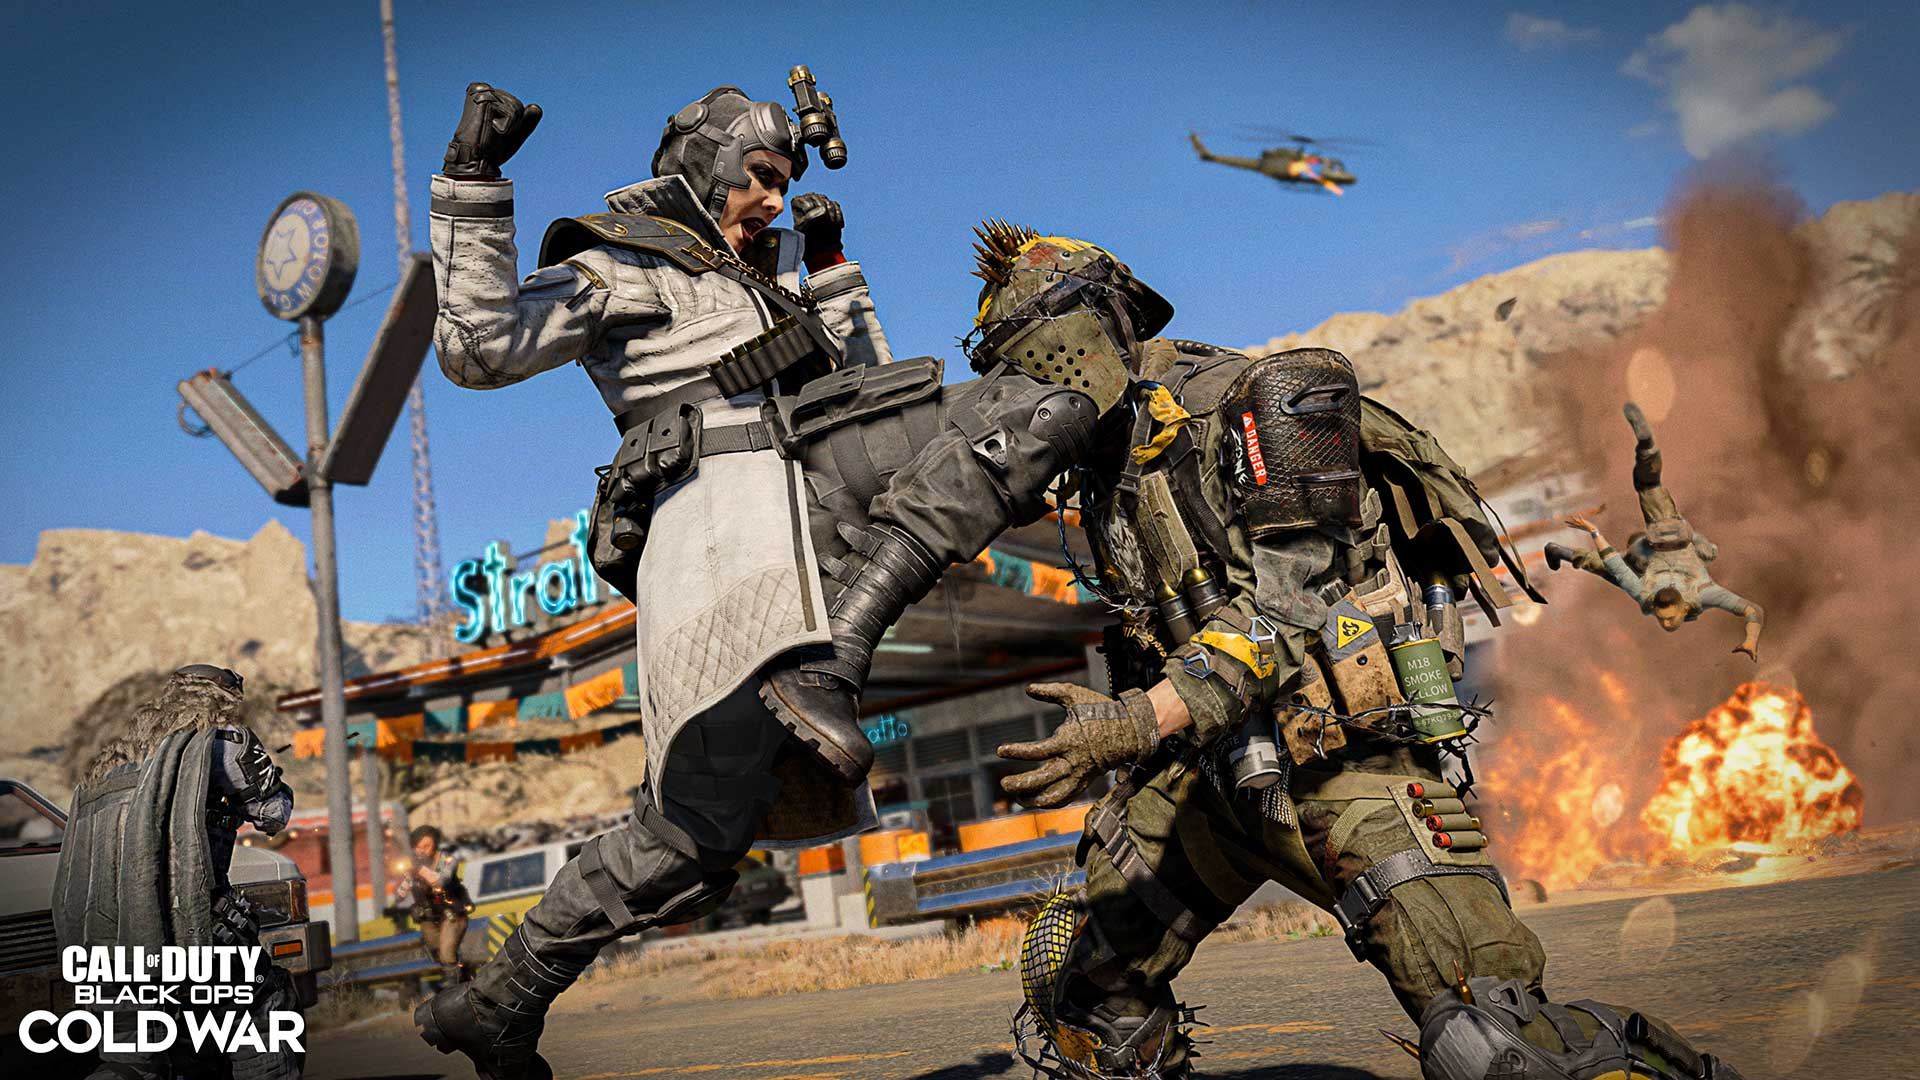 Call of Duty Black Ops Cold War: First preview of Season 4 - which is already known